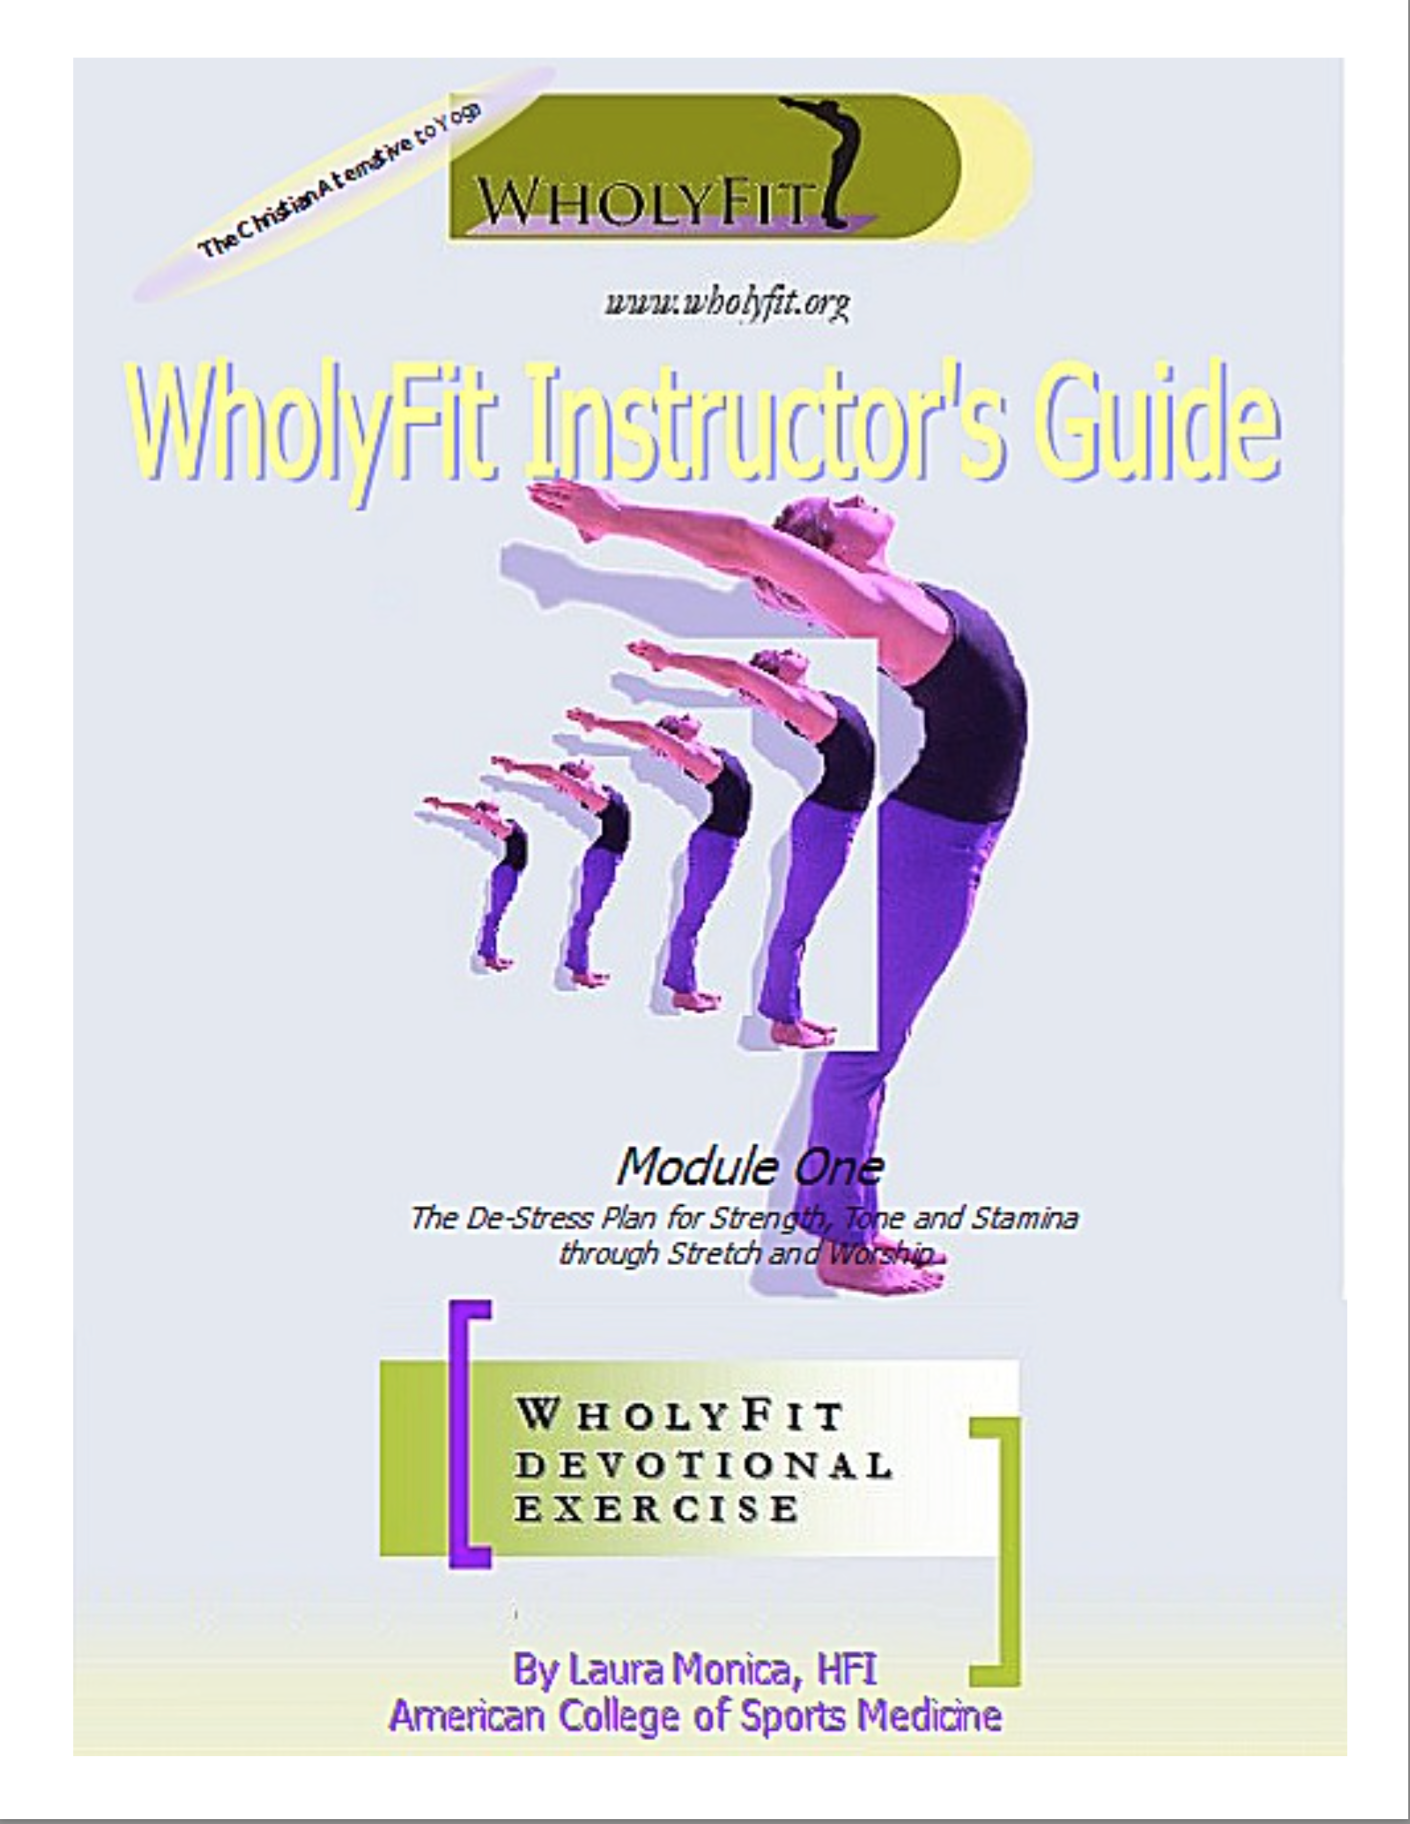 Wholyfit online christian alternative to yoga certification community how to build community in your fitness ministry or business how to stay in community with wholyfit and how to access all the many resources xflitez Images